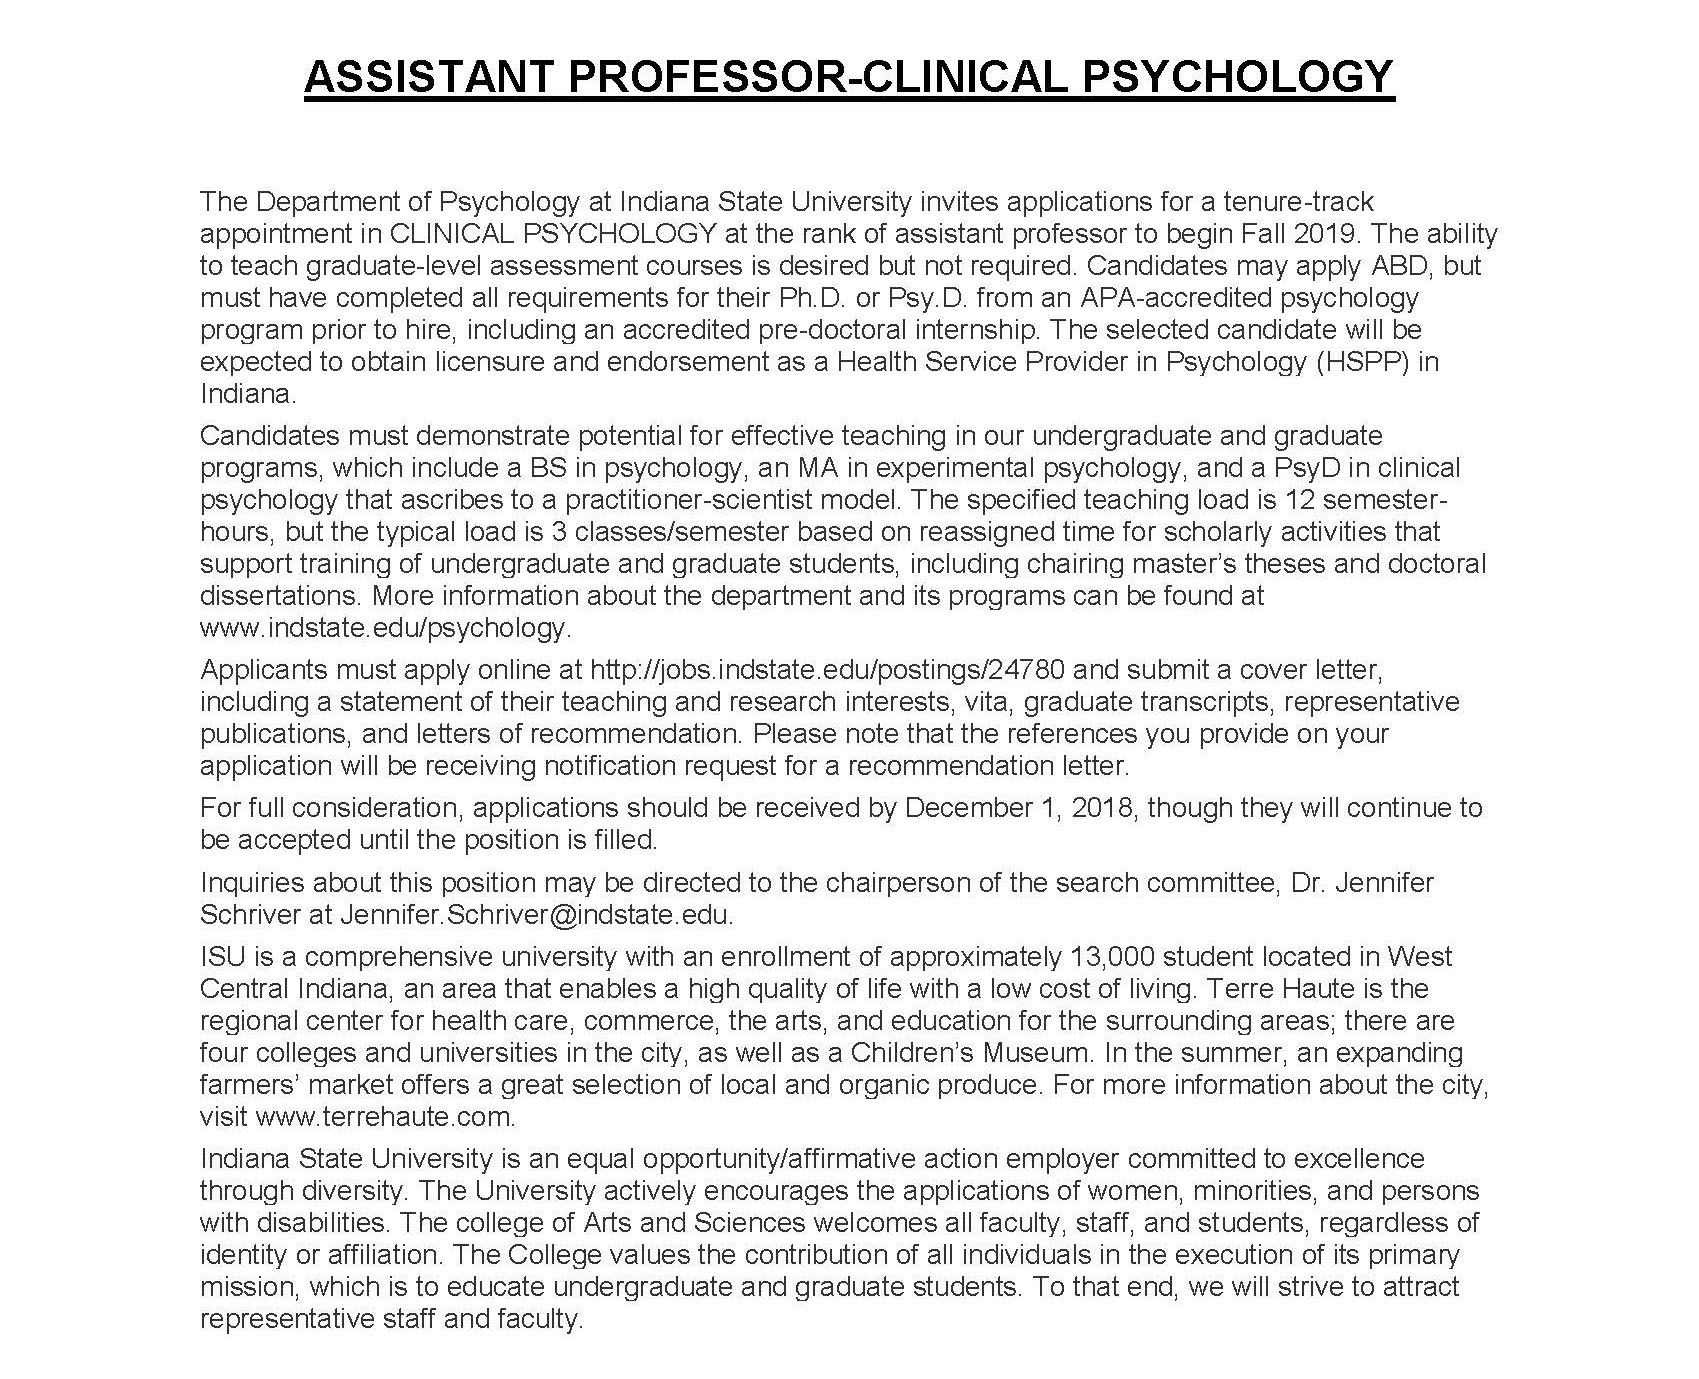 Asst Prof Clinical ad